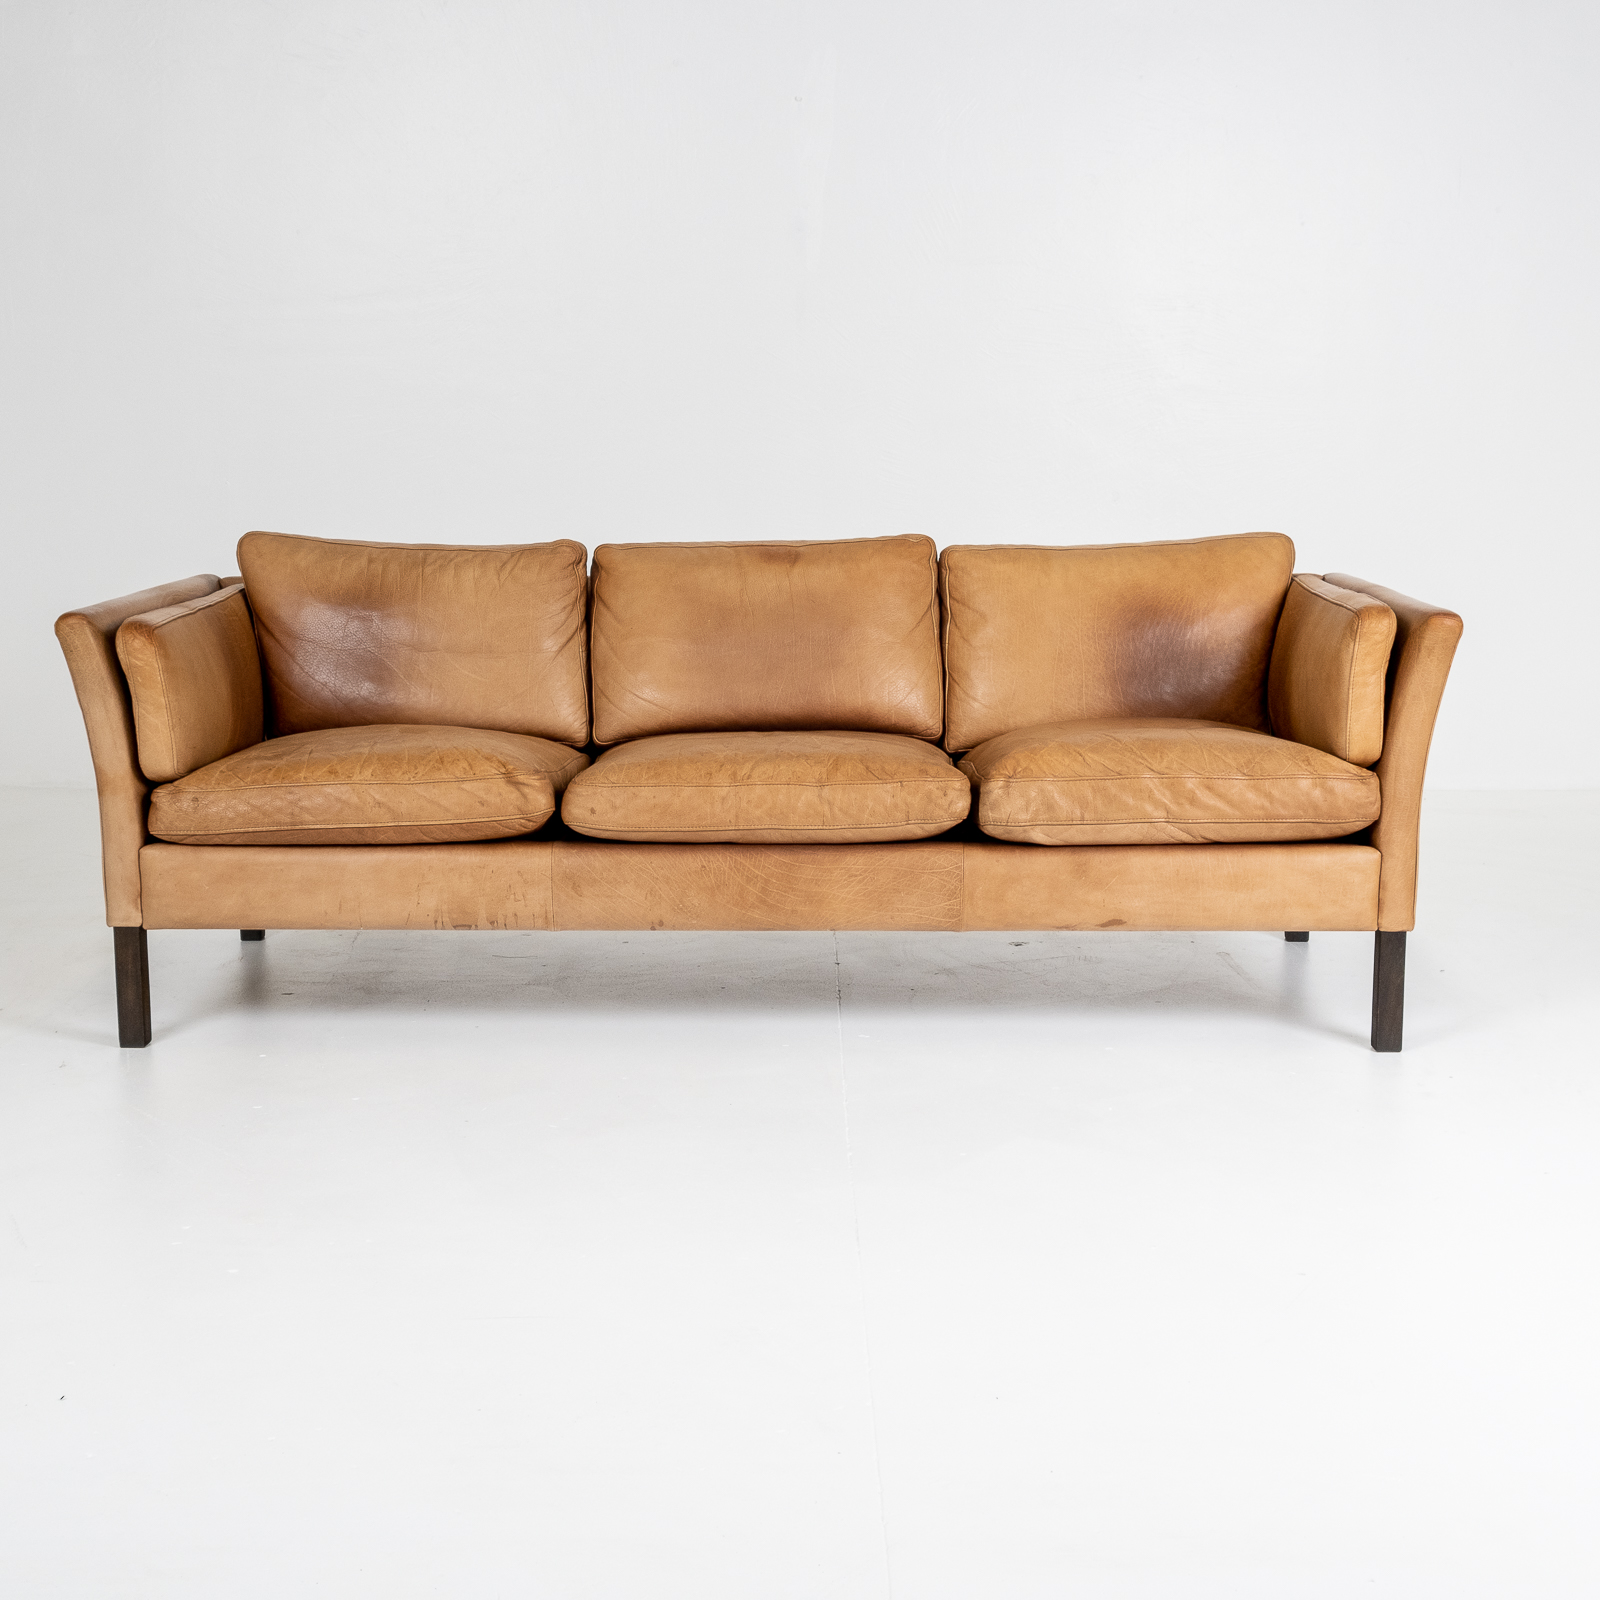 3 Seat Sofa By Stouby In Light Tan Leather, 1960s, Denmark 01